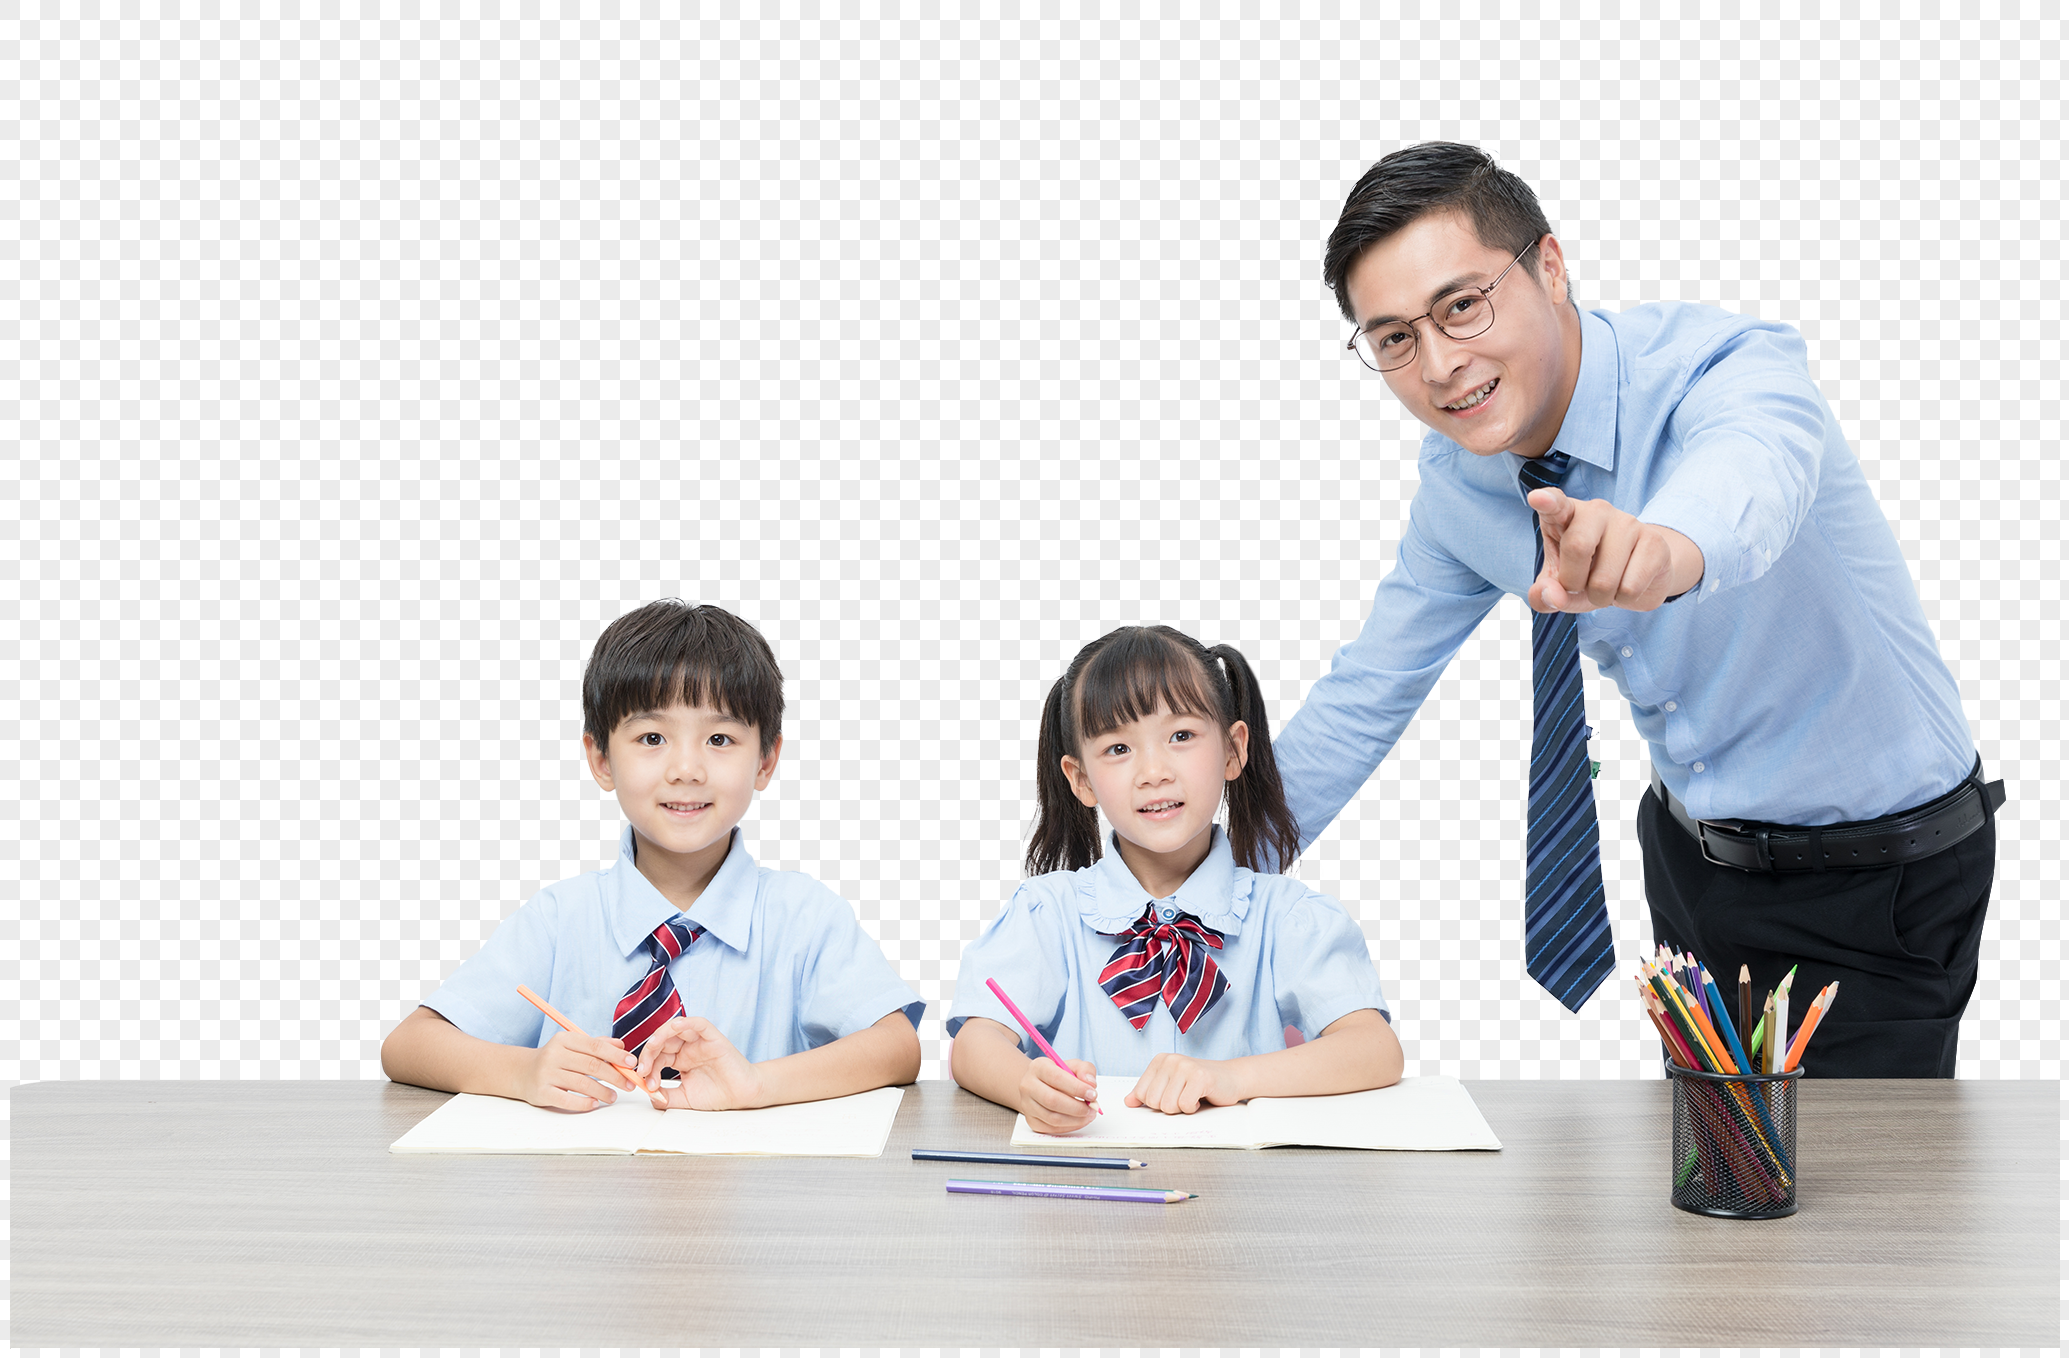 Teachers And Children Learn Together Png Image Picture Free Download